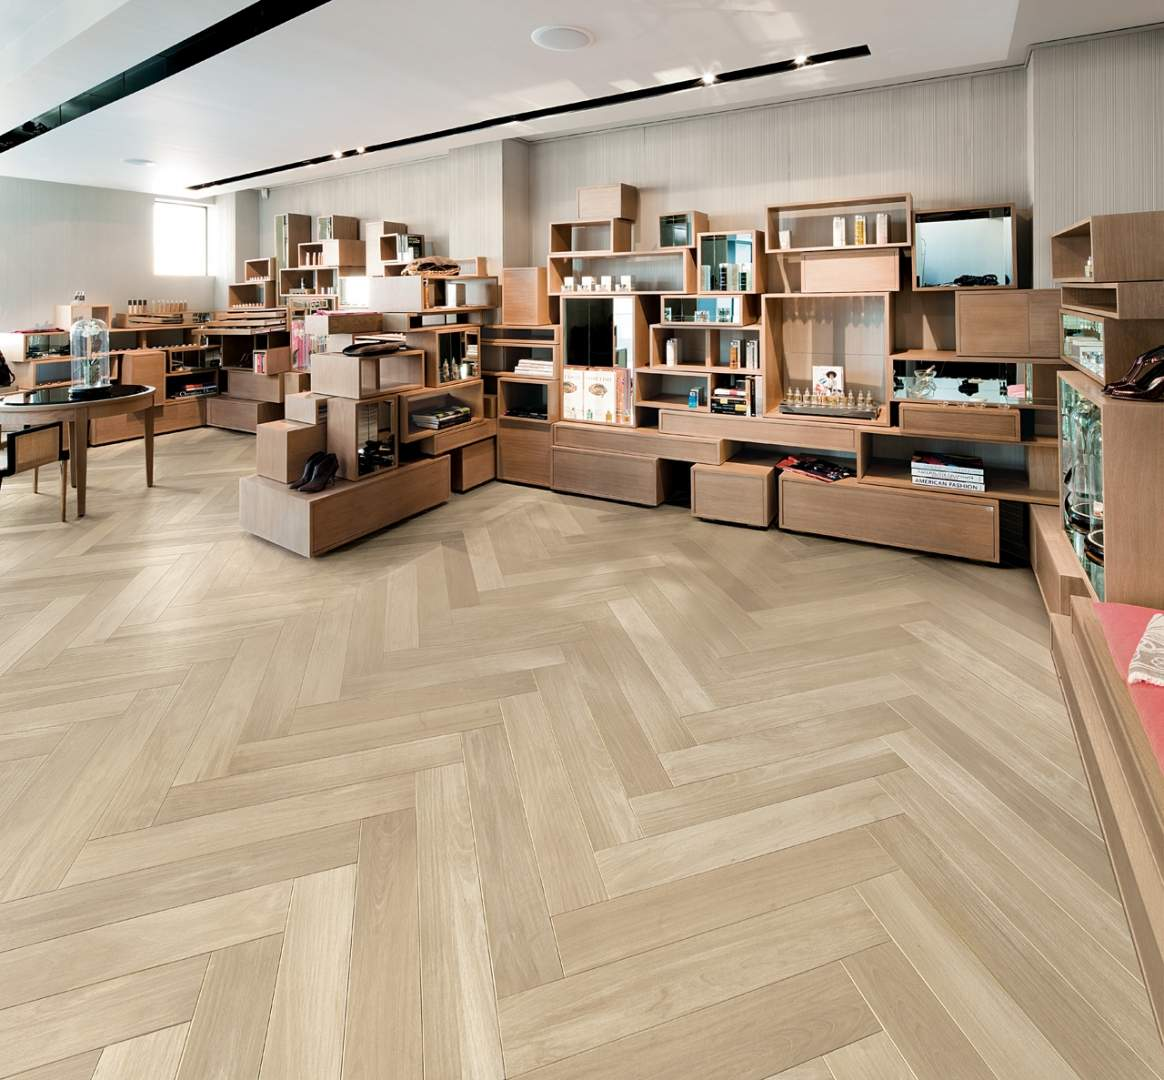 Nuances Subtle Wood Effect Tiles For Indoor And Outdoor Use Dublin